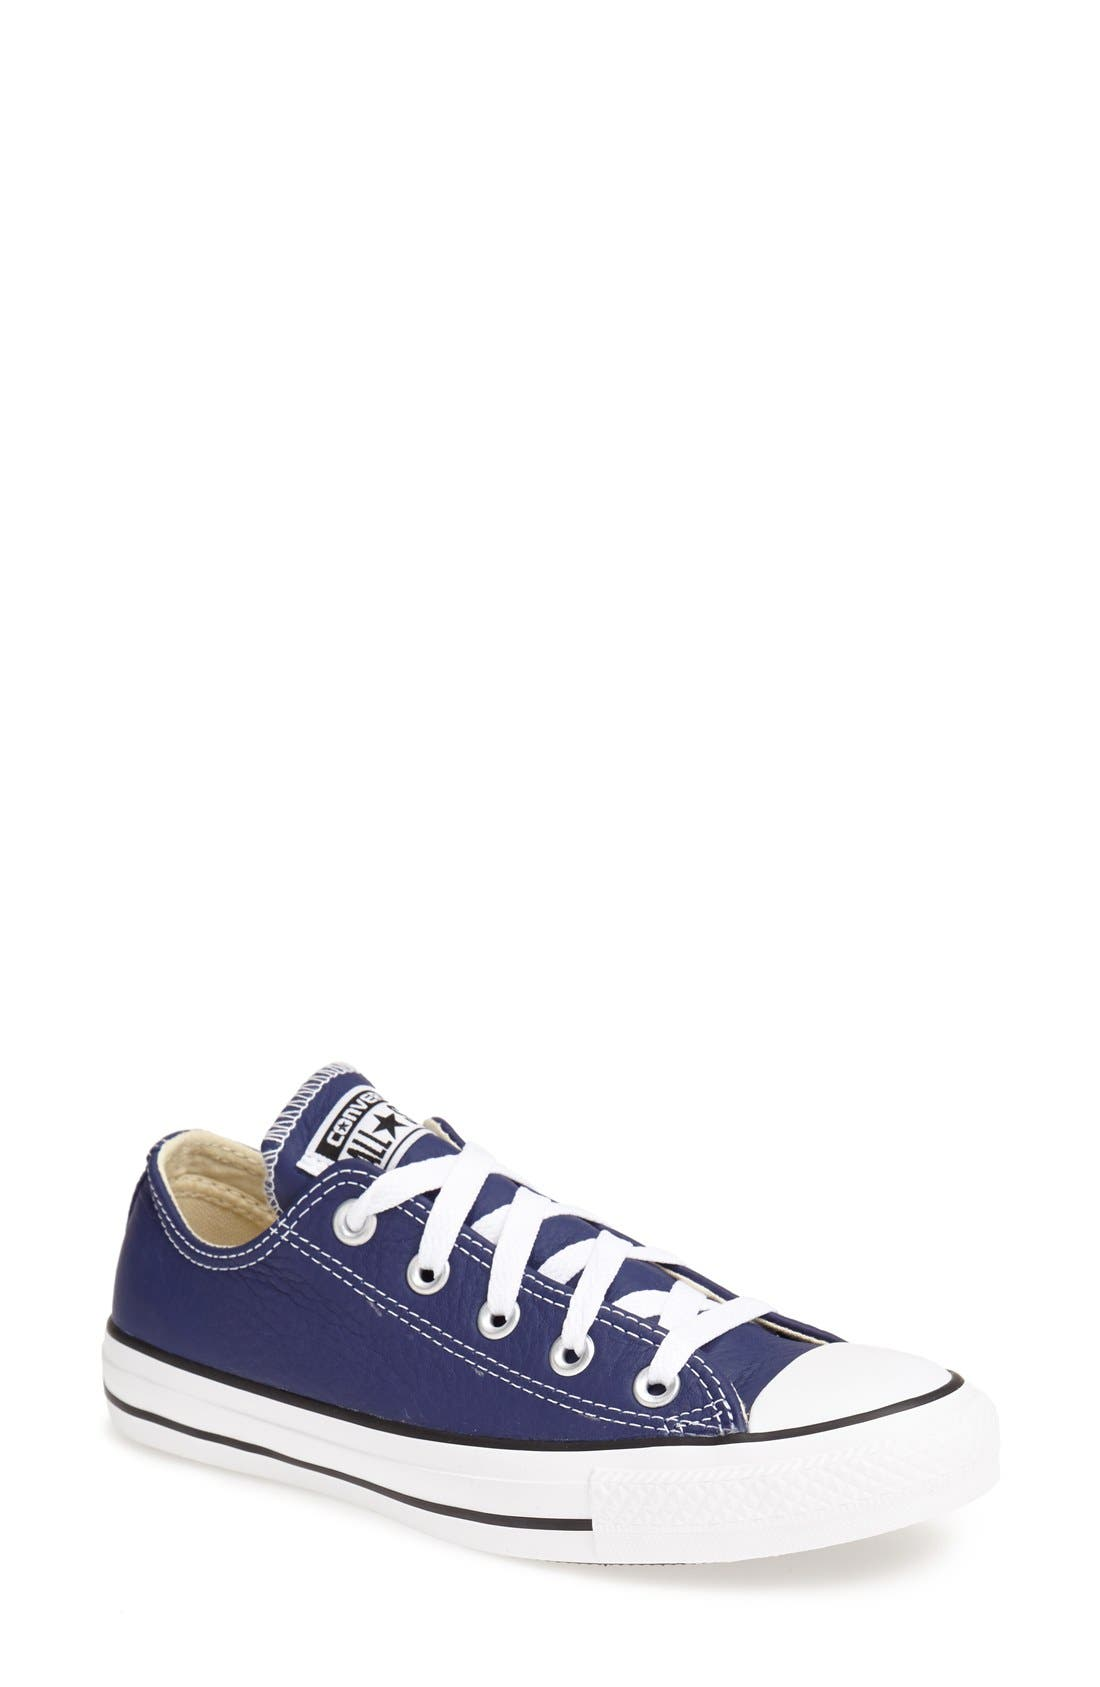 Alternate Image 1 Selected - Converse Chuck Taylor® All Star® 'Ox' Leather Sneaker (Women)